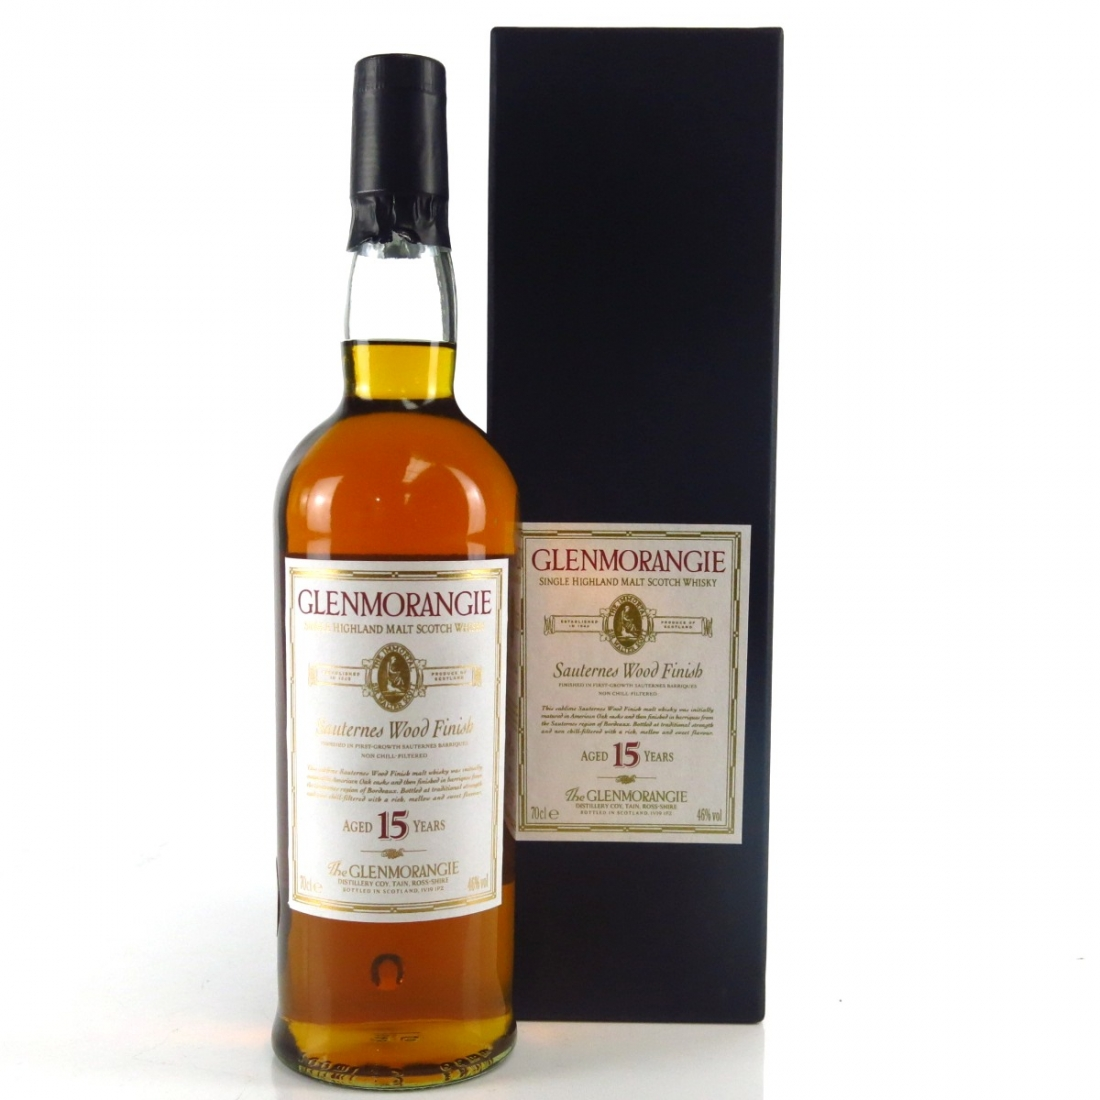 Glenmorangie 15 Year Old Sauternes Wood Finish